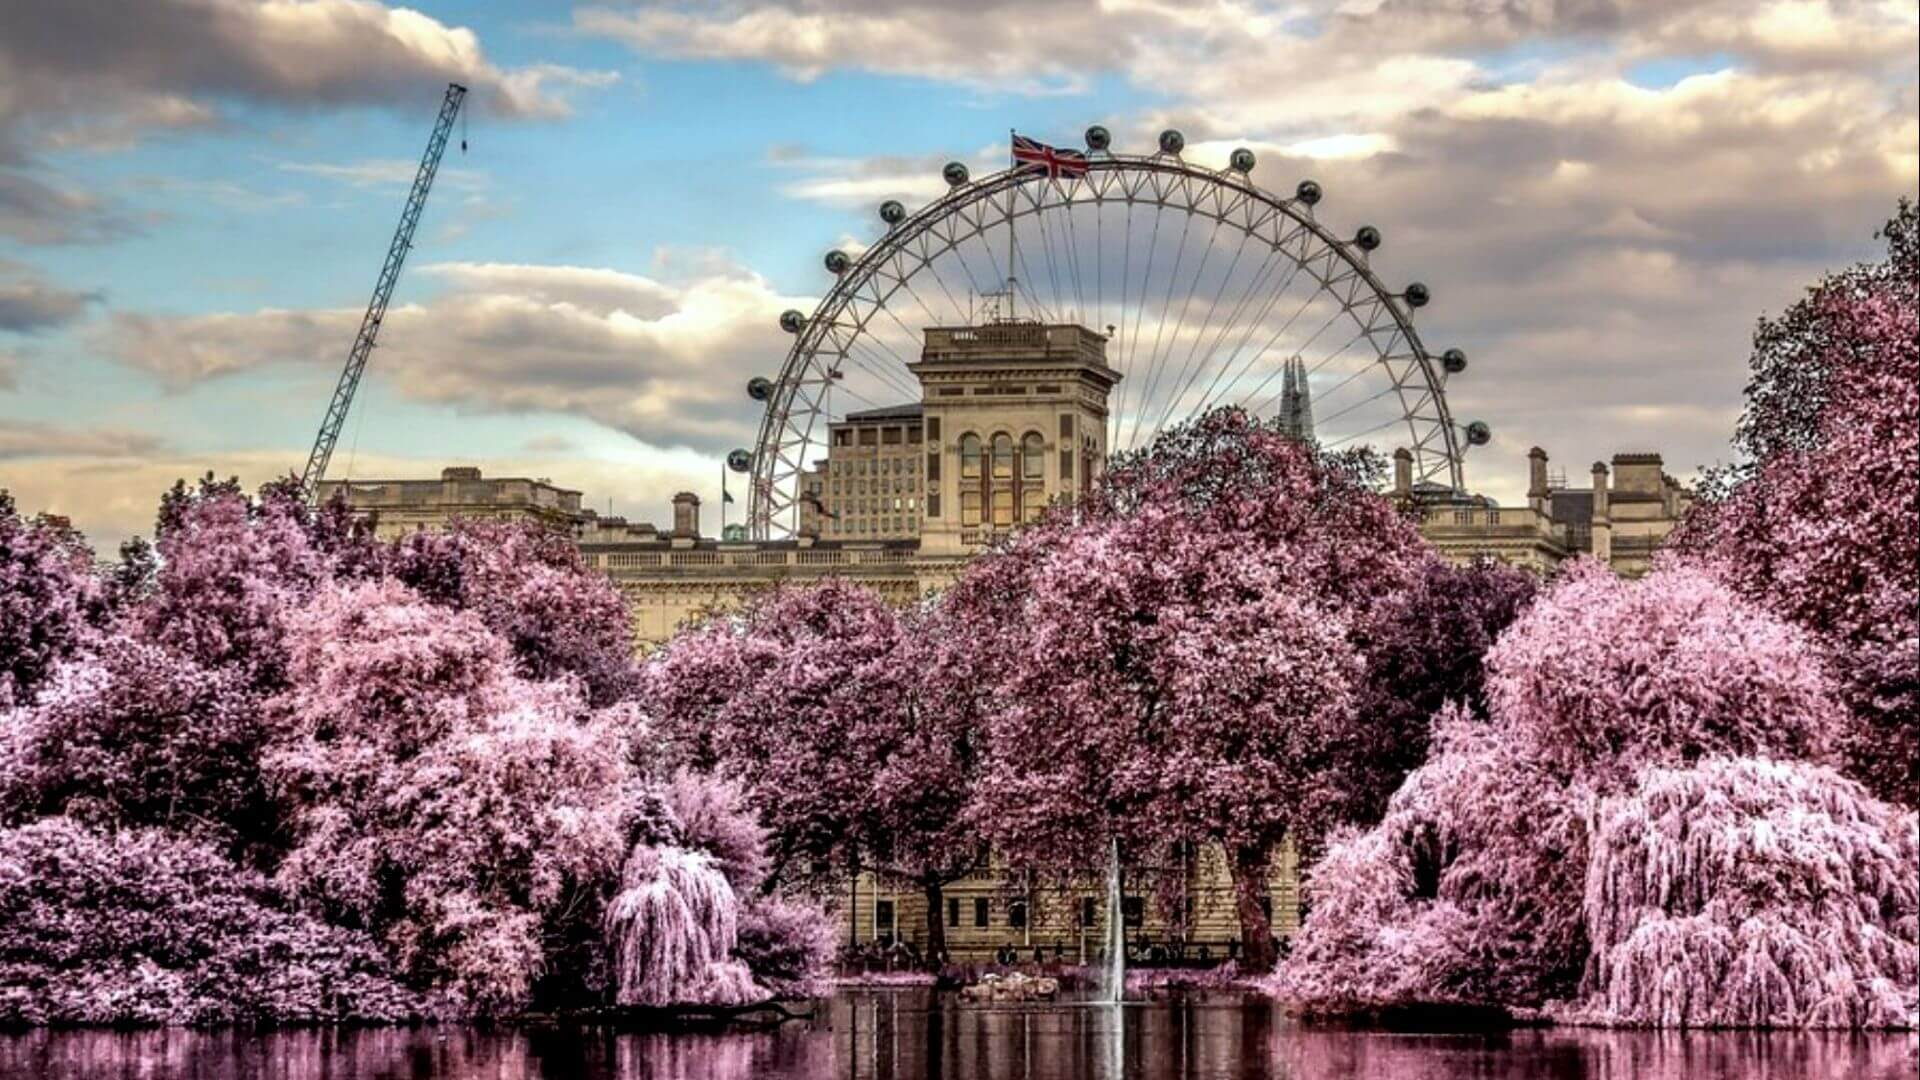 UK Luxurious Holiday Travel and Tour Package